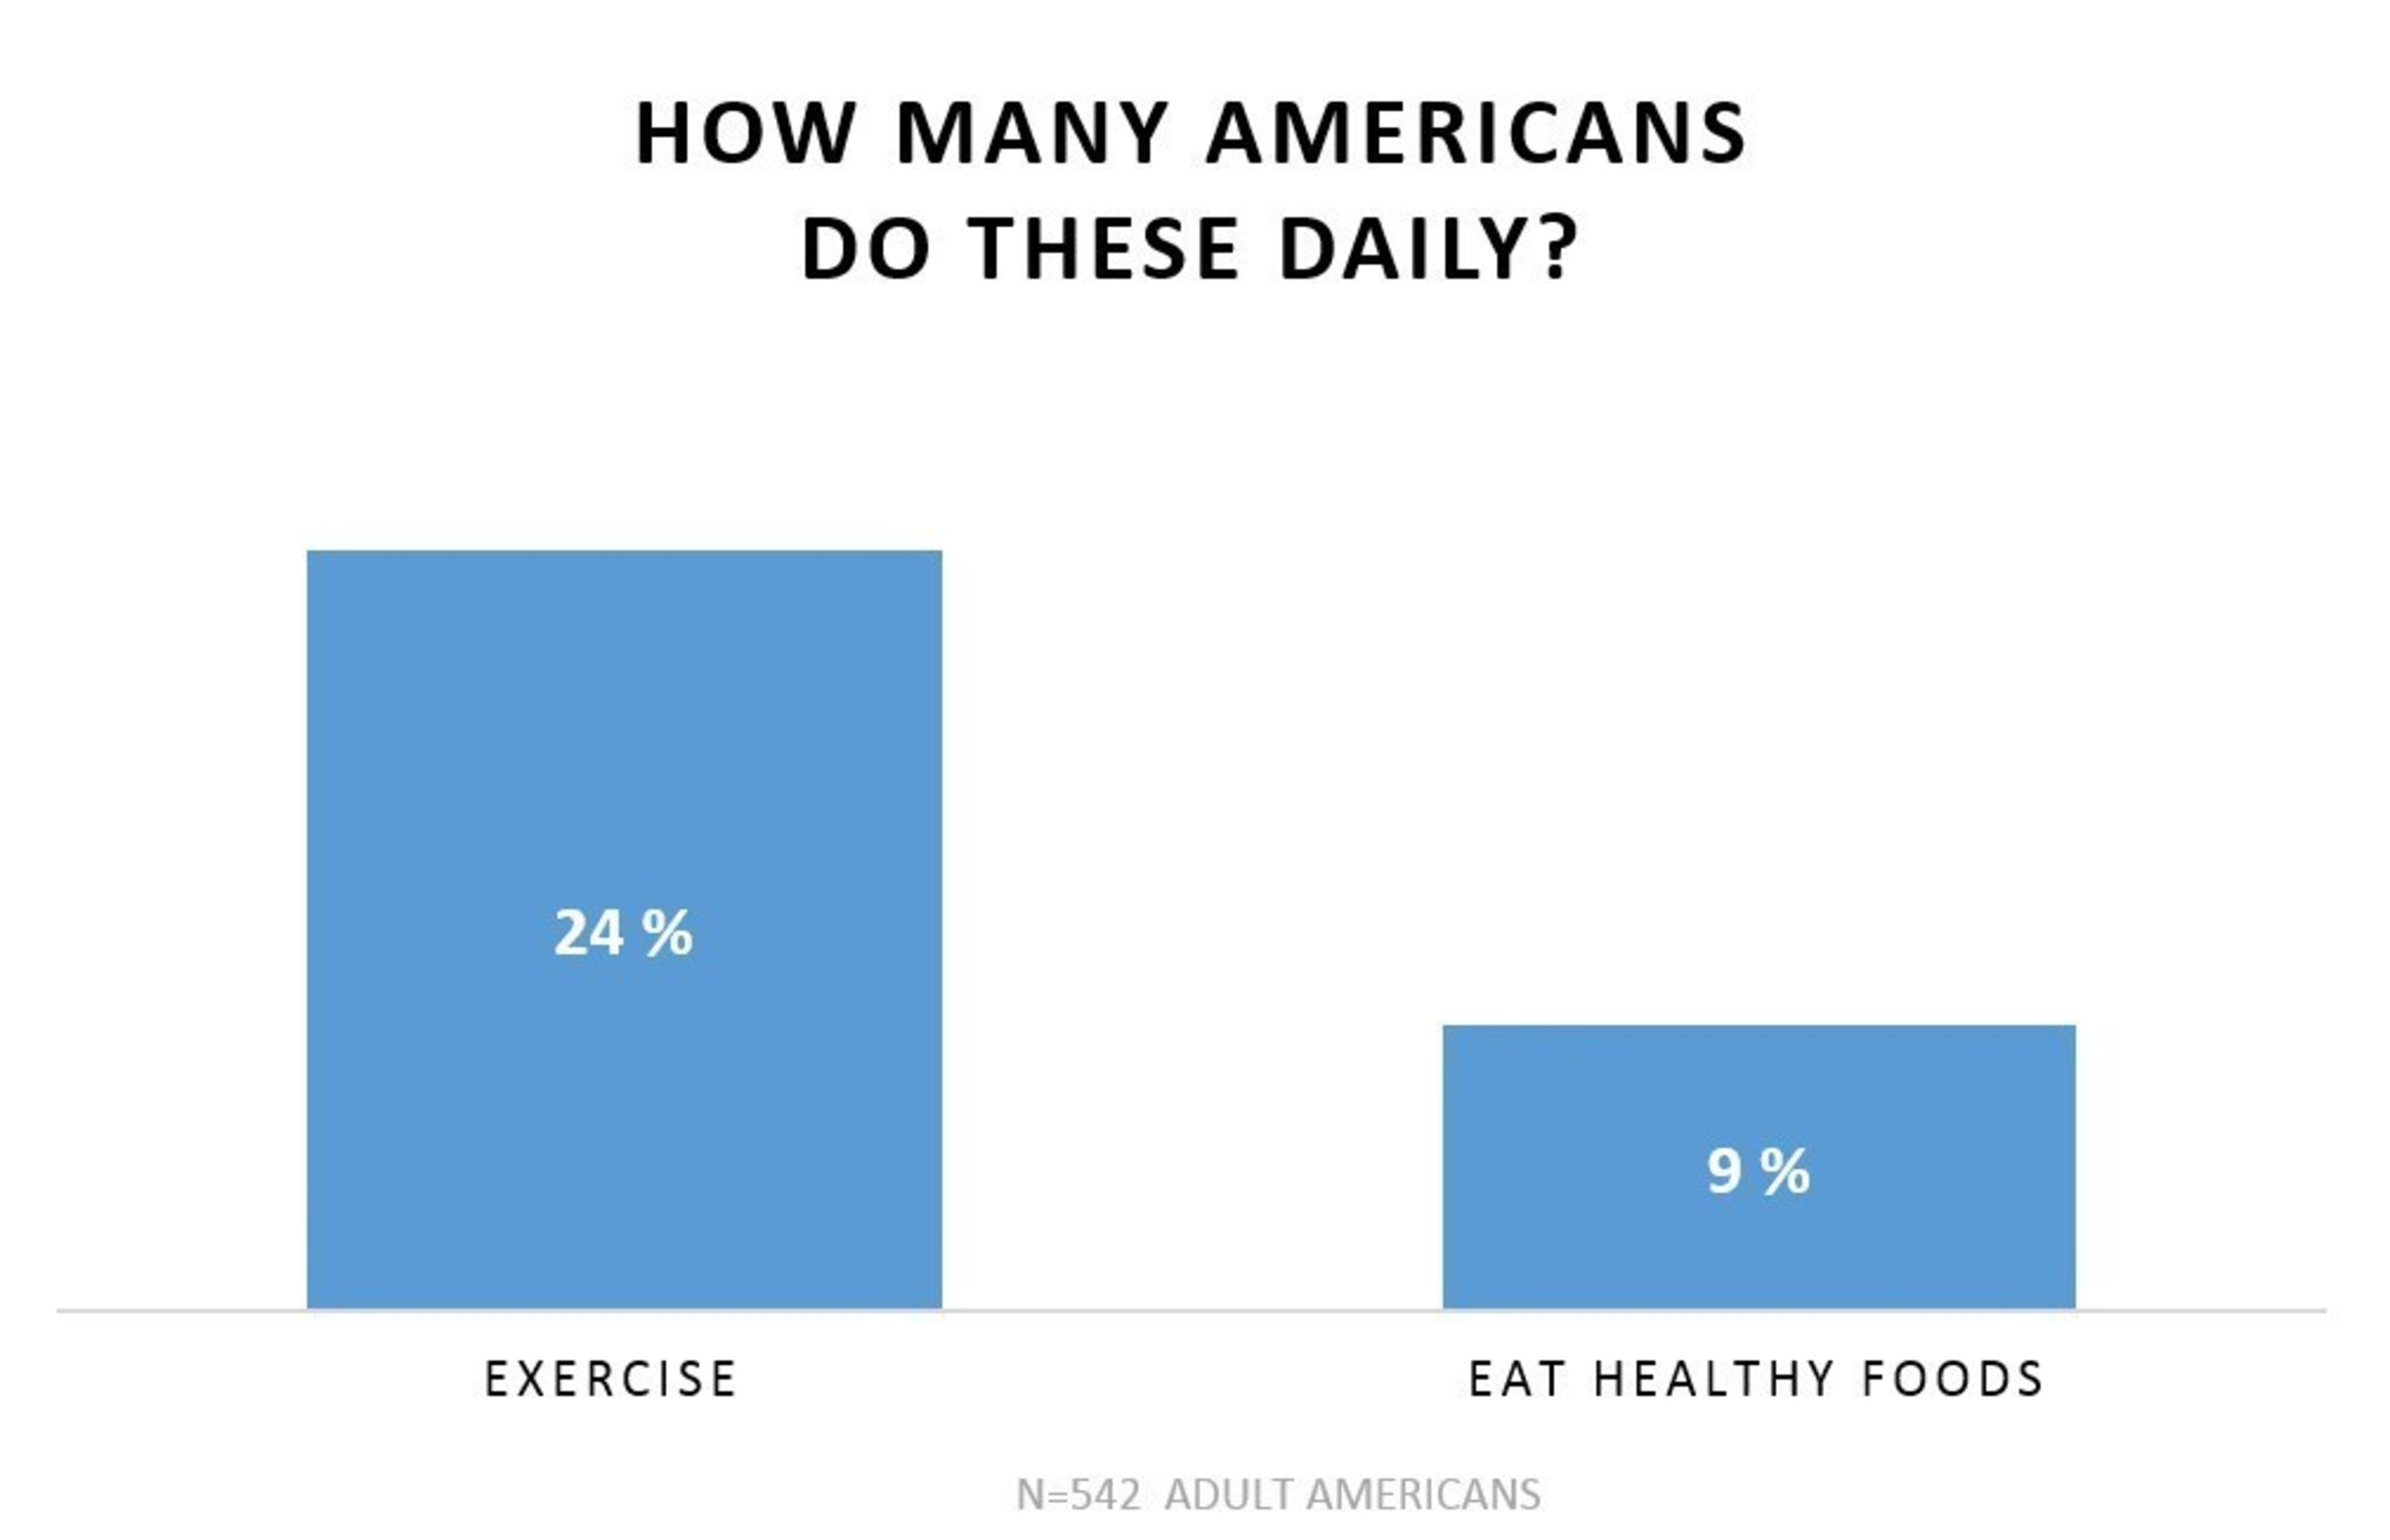 Brodeur Partners Health and Wellness survey finds that while 24% of respondents said they exercise every day, ...